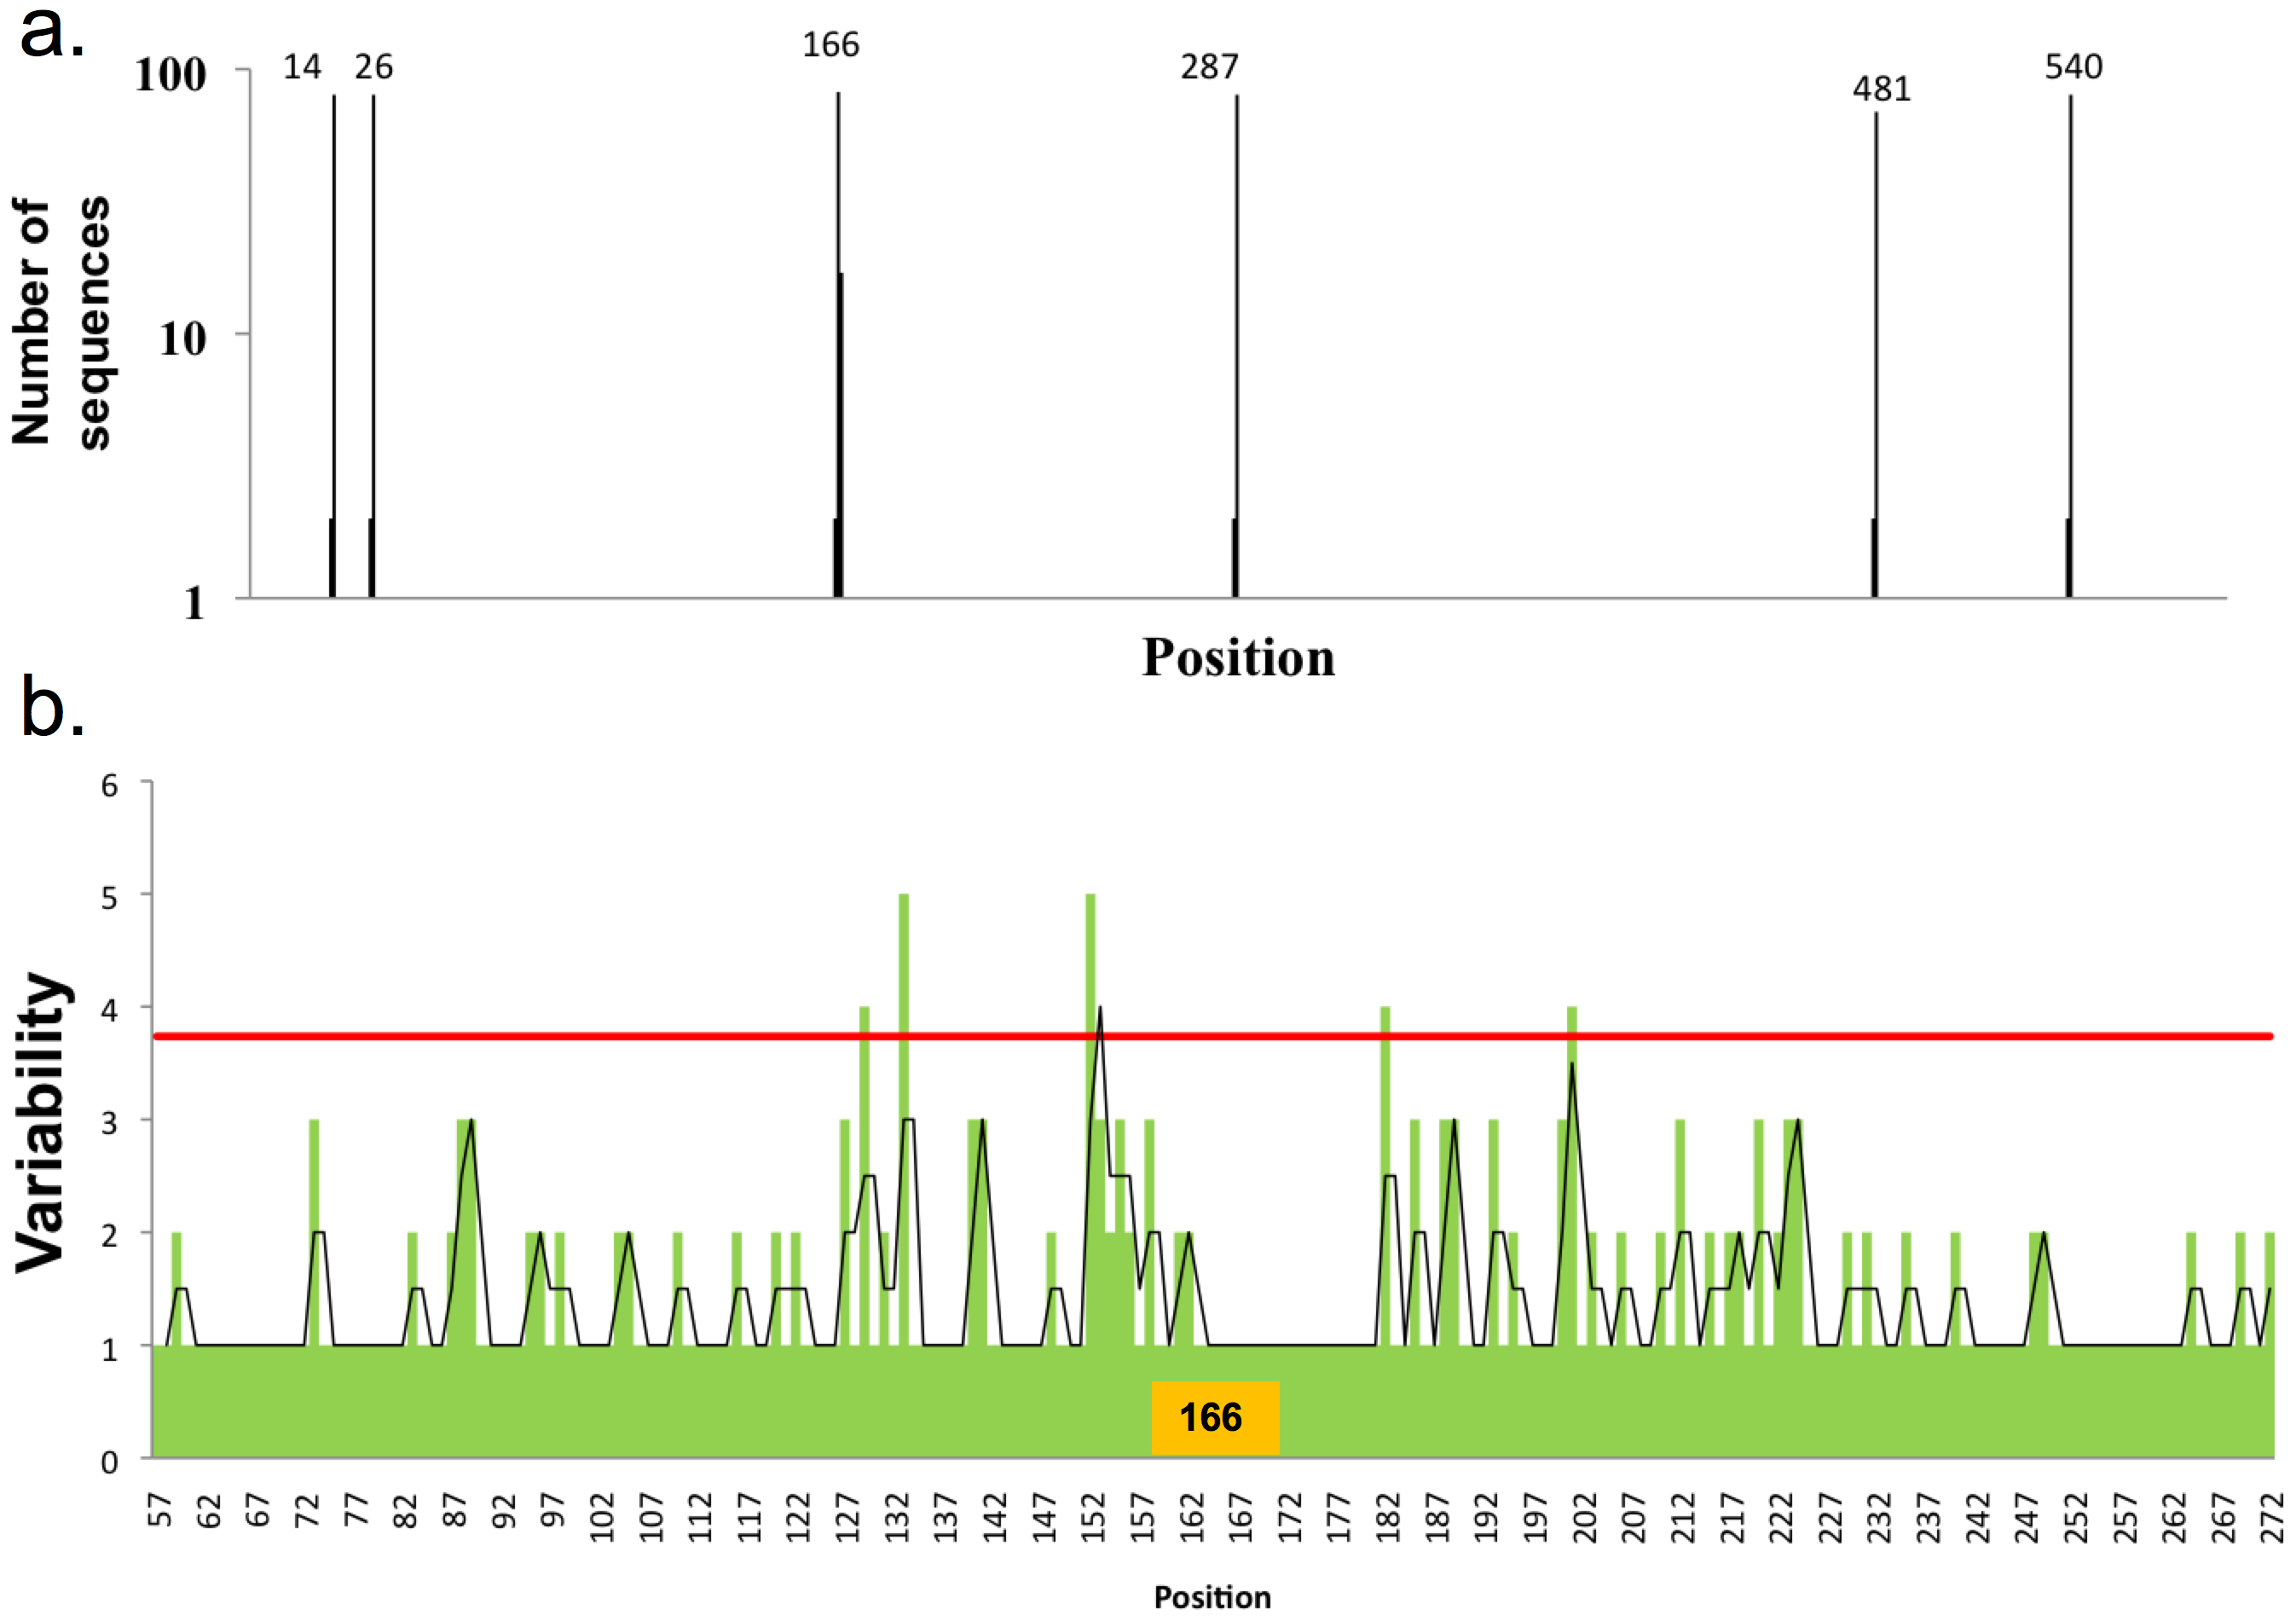 Distribution of glycosylation sites in H2N2 viruses and influence on HA variability.